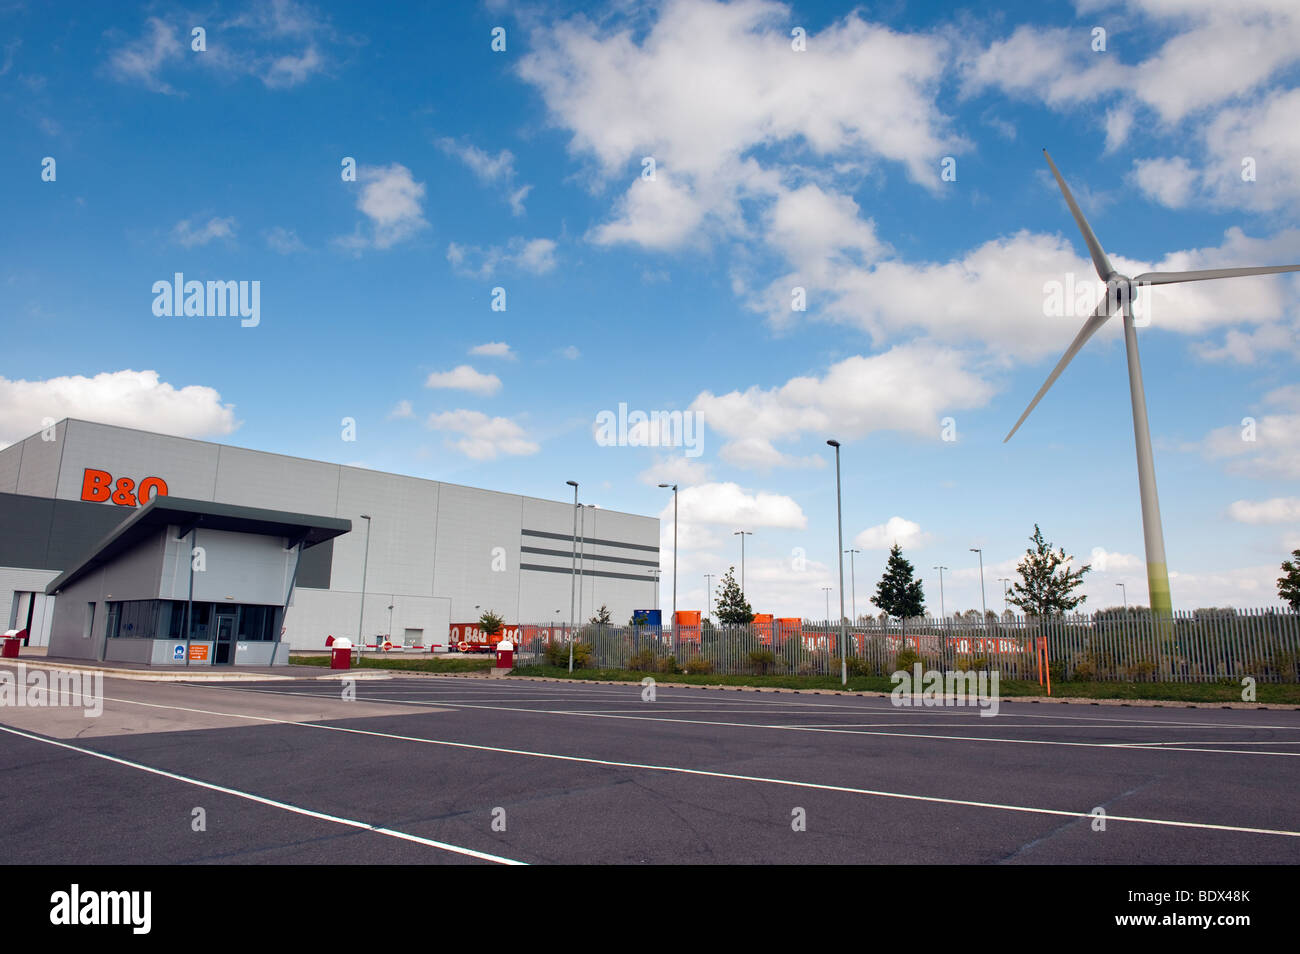 B&Q distribution centre and wind turbine at 'Manton Wood' Worksop Nottinghamshire - Stock Image